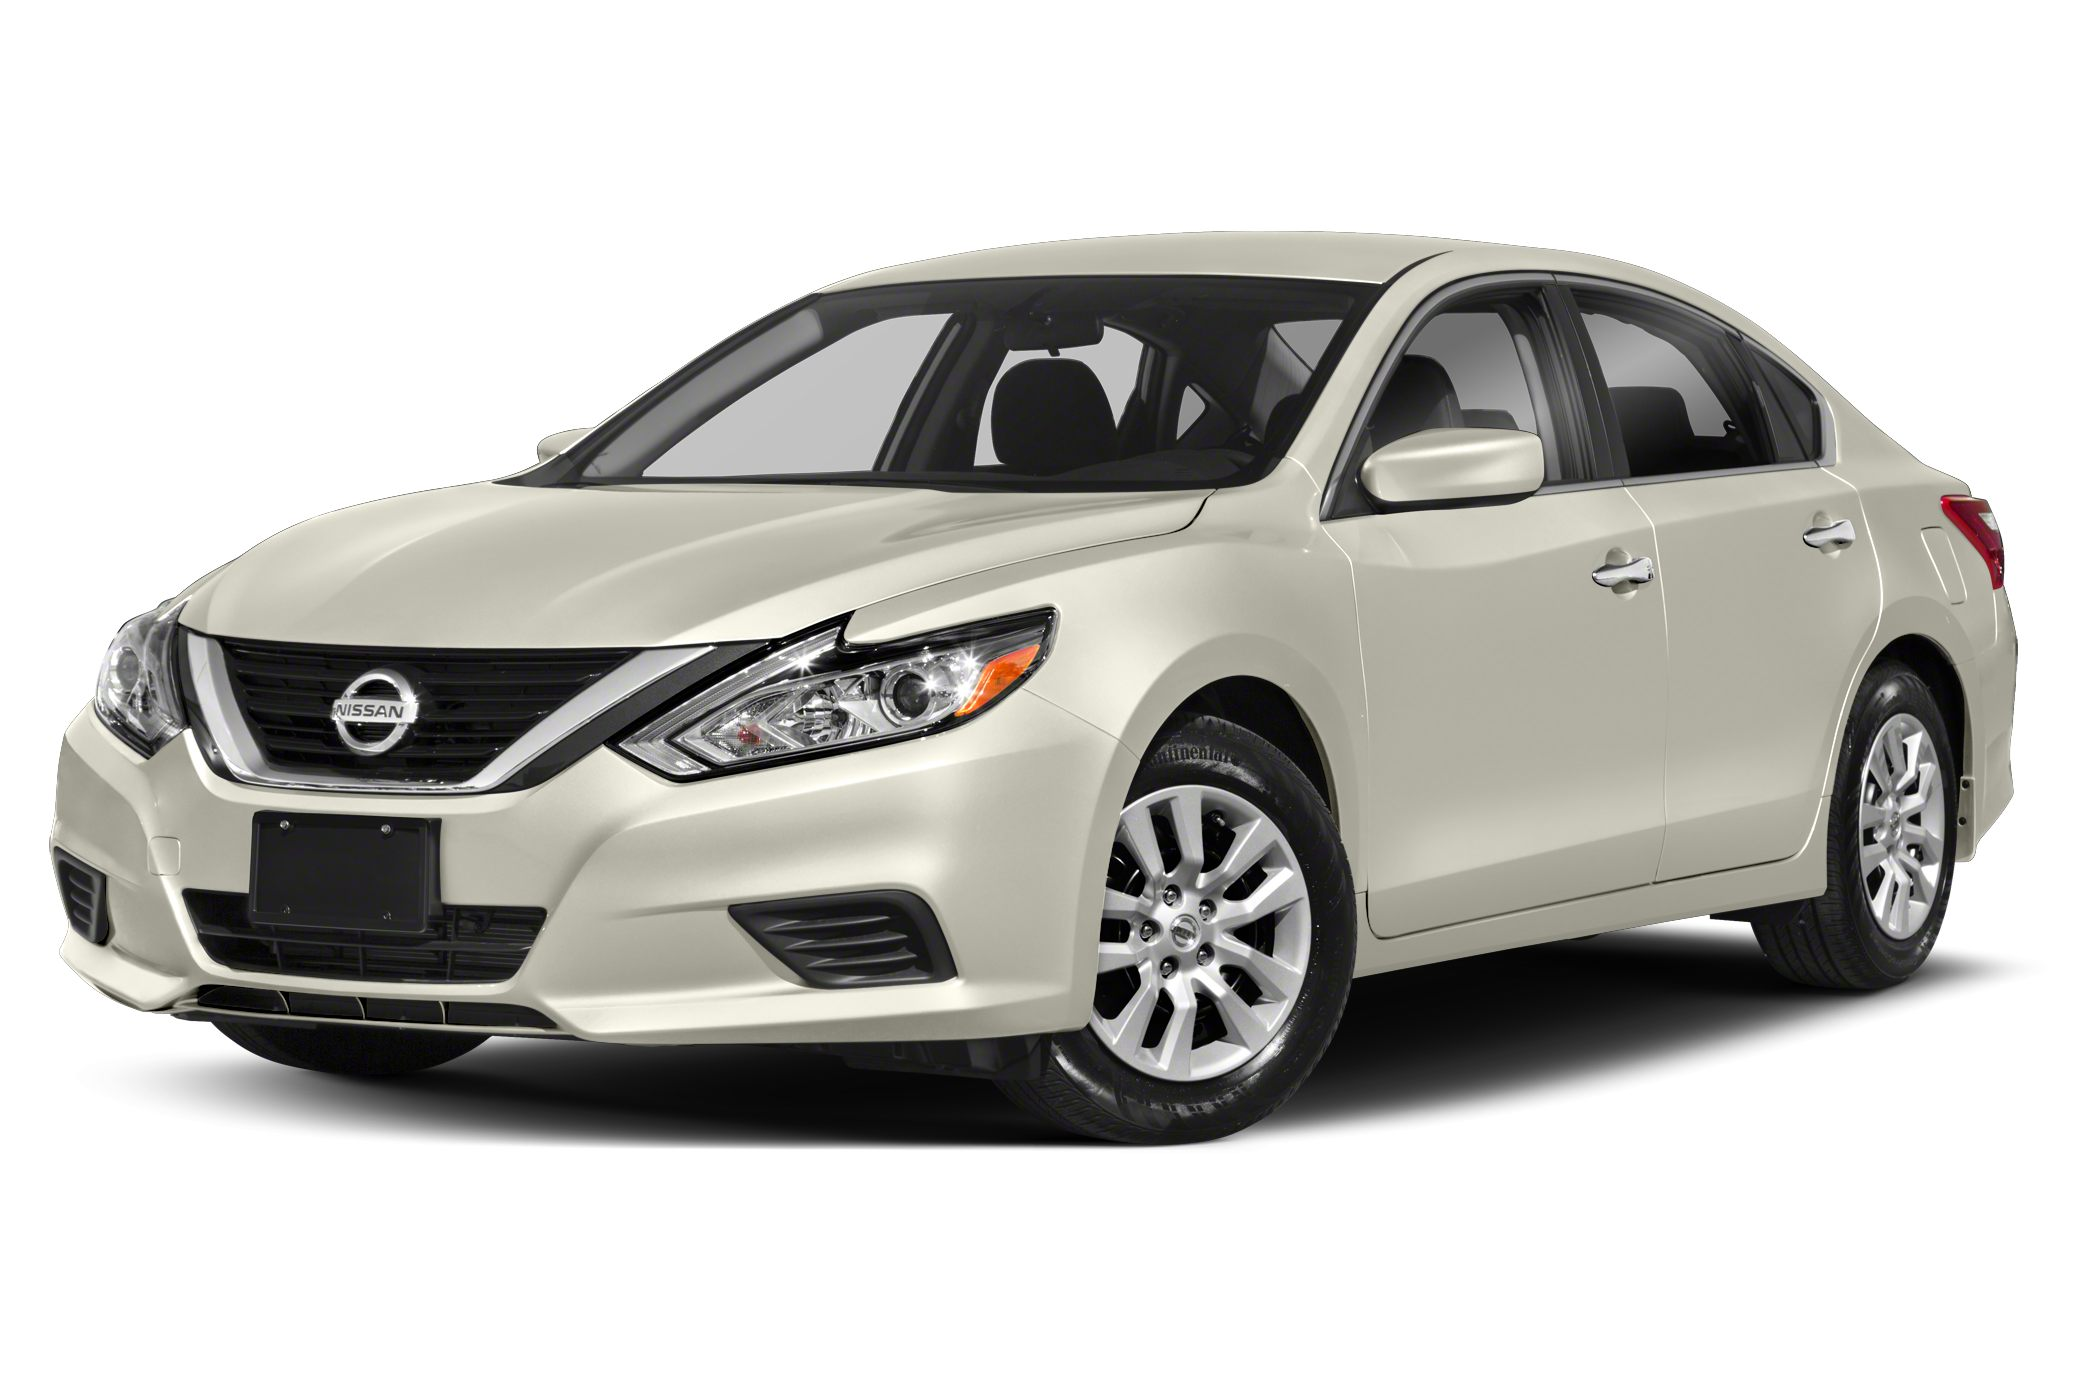 cars for sale near me under 6000 beautiful nissan altimas for sale under 6 000 miles used cars. Black Bedroom Furniture Sets. Home Design Ideas